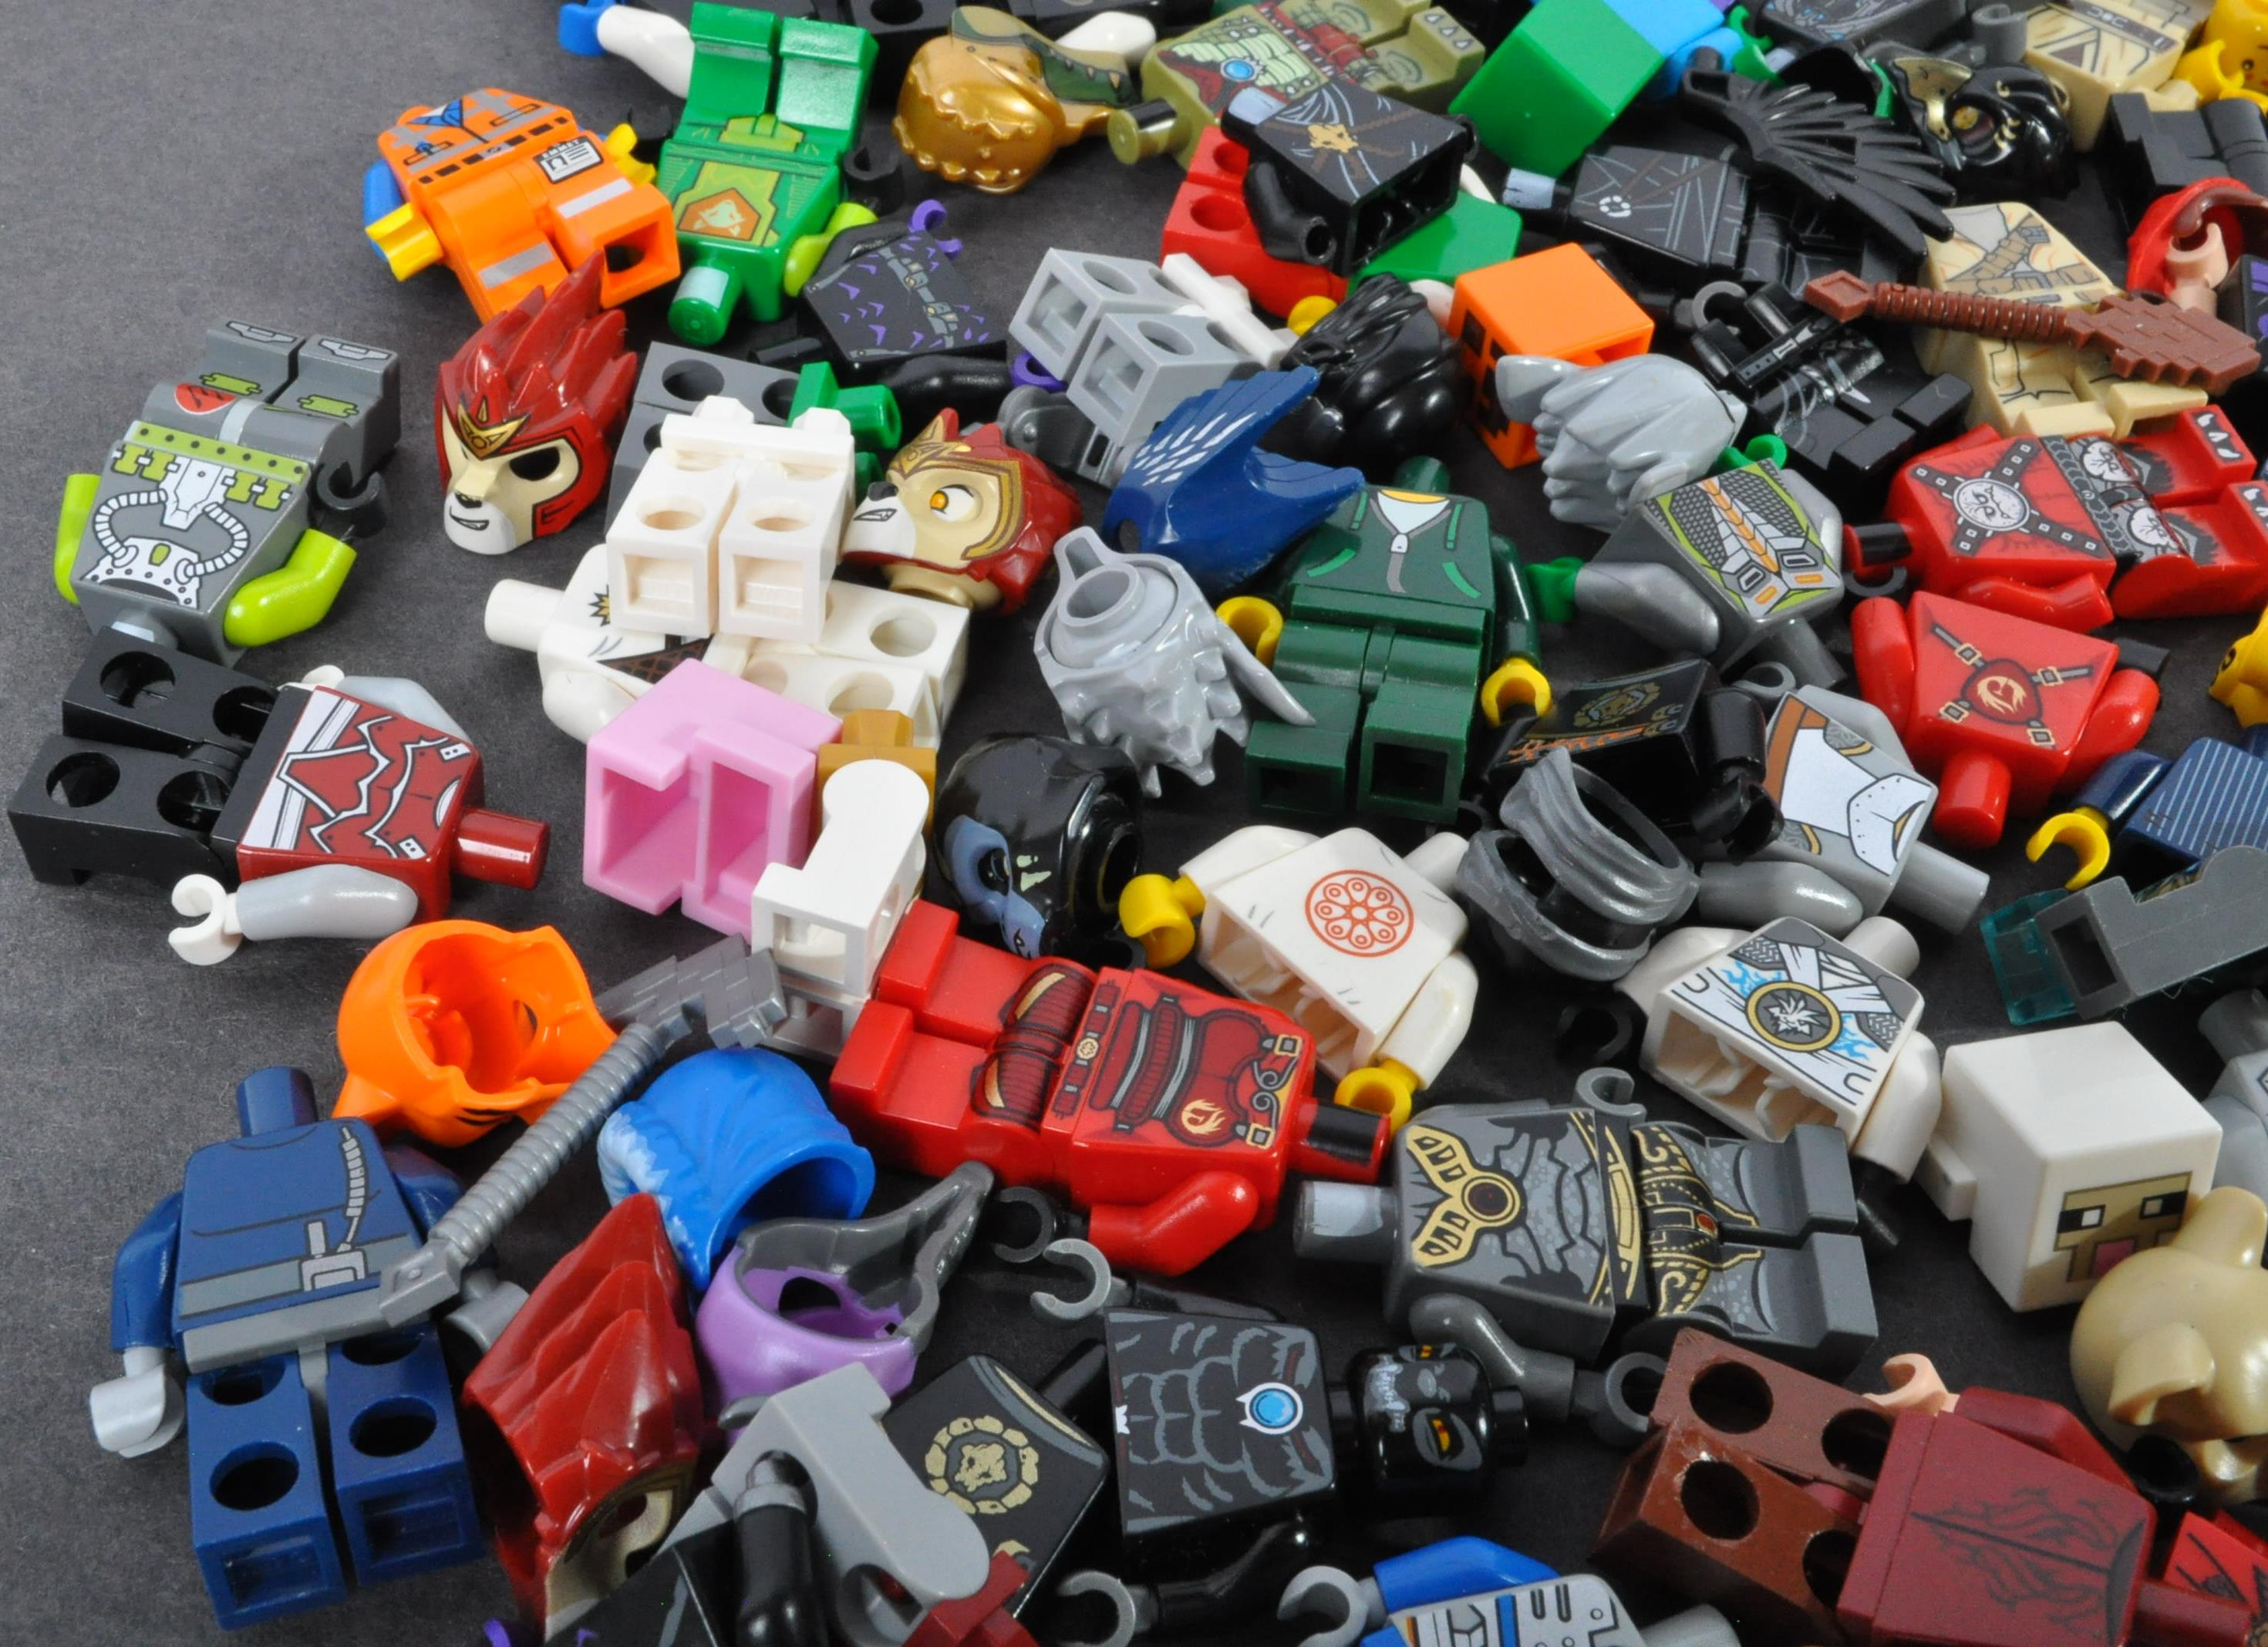 LEGO MINIFIGURES - COLLECTION OF ASSORTED LEGO MINIFIGURE PARTS - Image 3 of 5